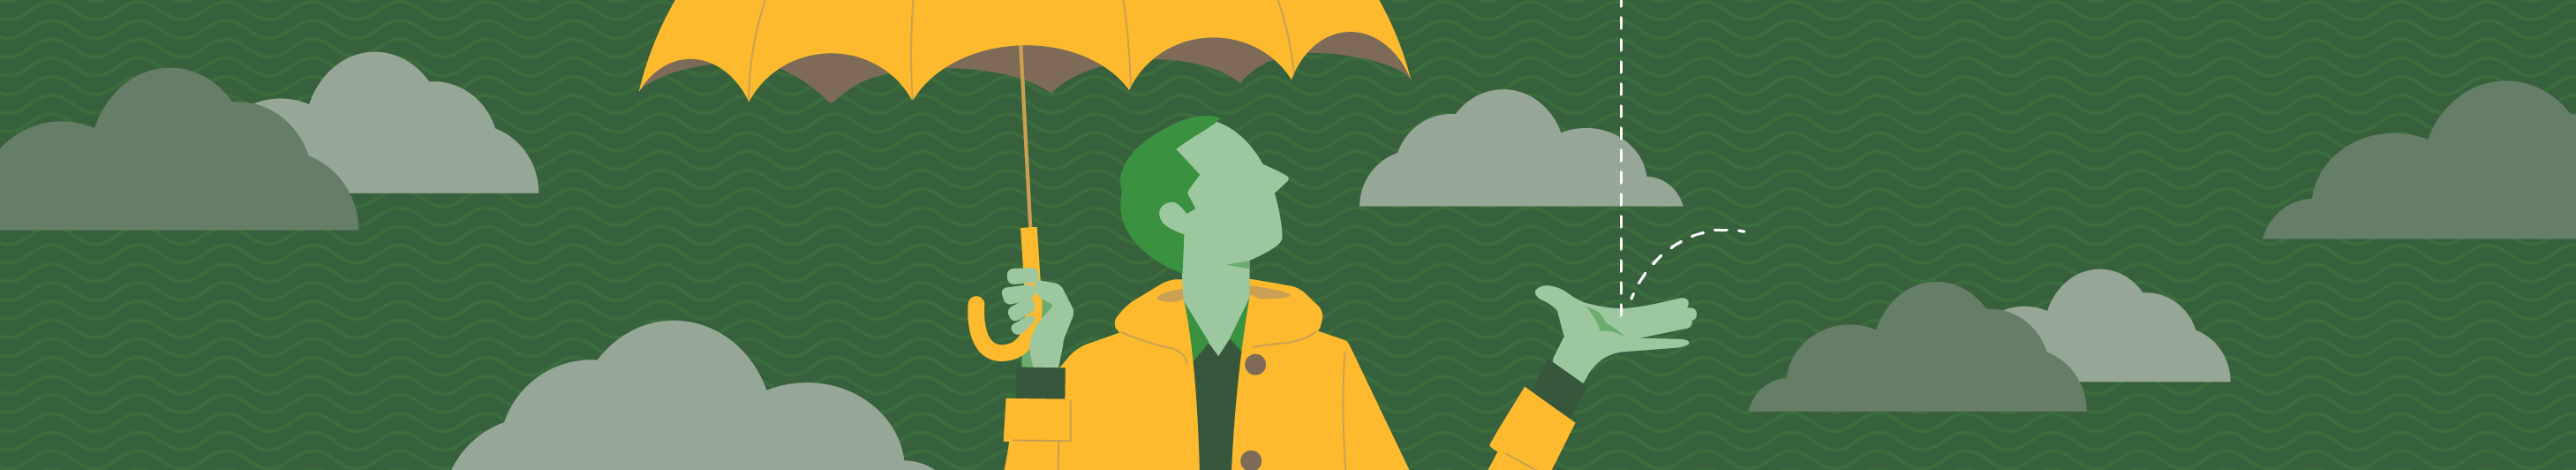 illustration of a man holding an umbrella in the rain